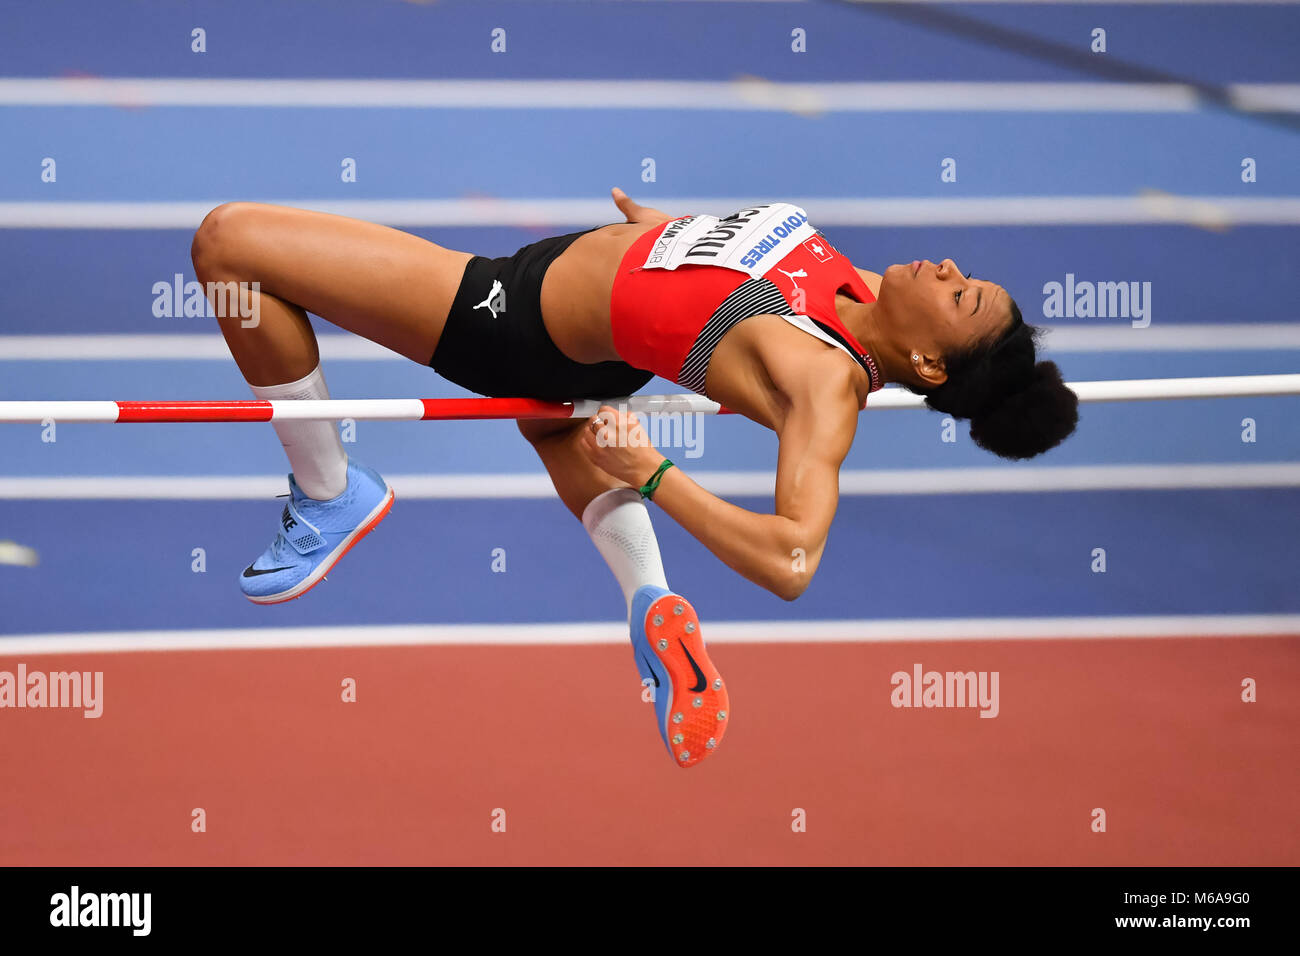 Birmingham, UK. 2nd March, 2018. Birmingham, UK. 2nd Mar, 2018. Caroline Agnou (SUI) in Women's High Jump Pentathlon Stock Photo